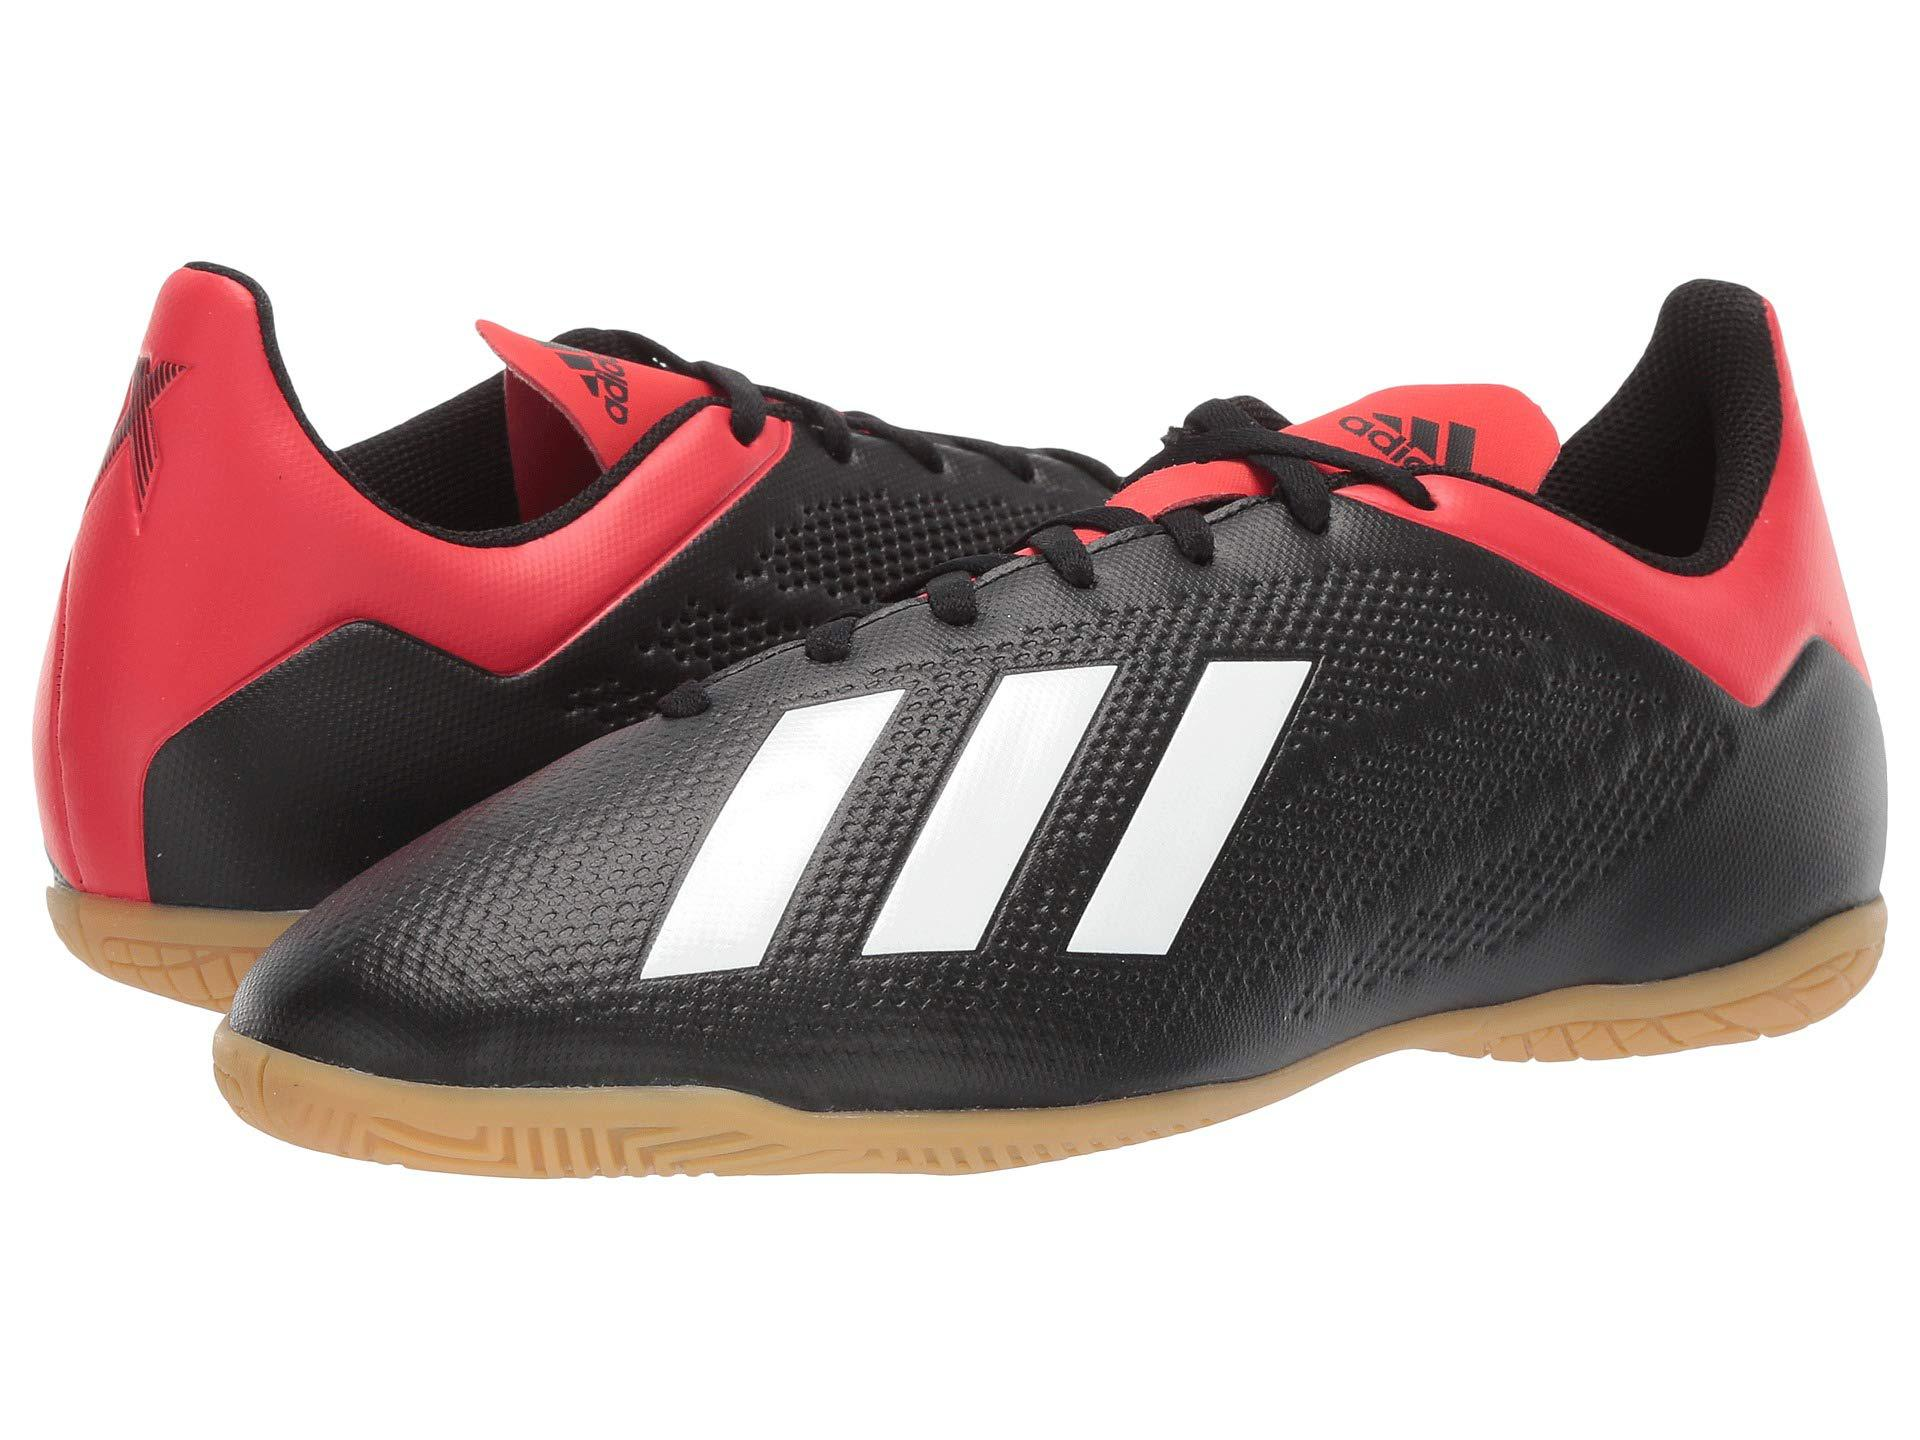 77d53d097 adidas X 18.4 In (core Black/off-white/active Red) Men's Soccer ...